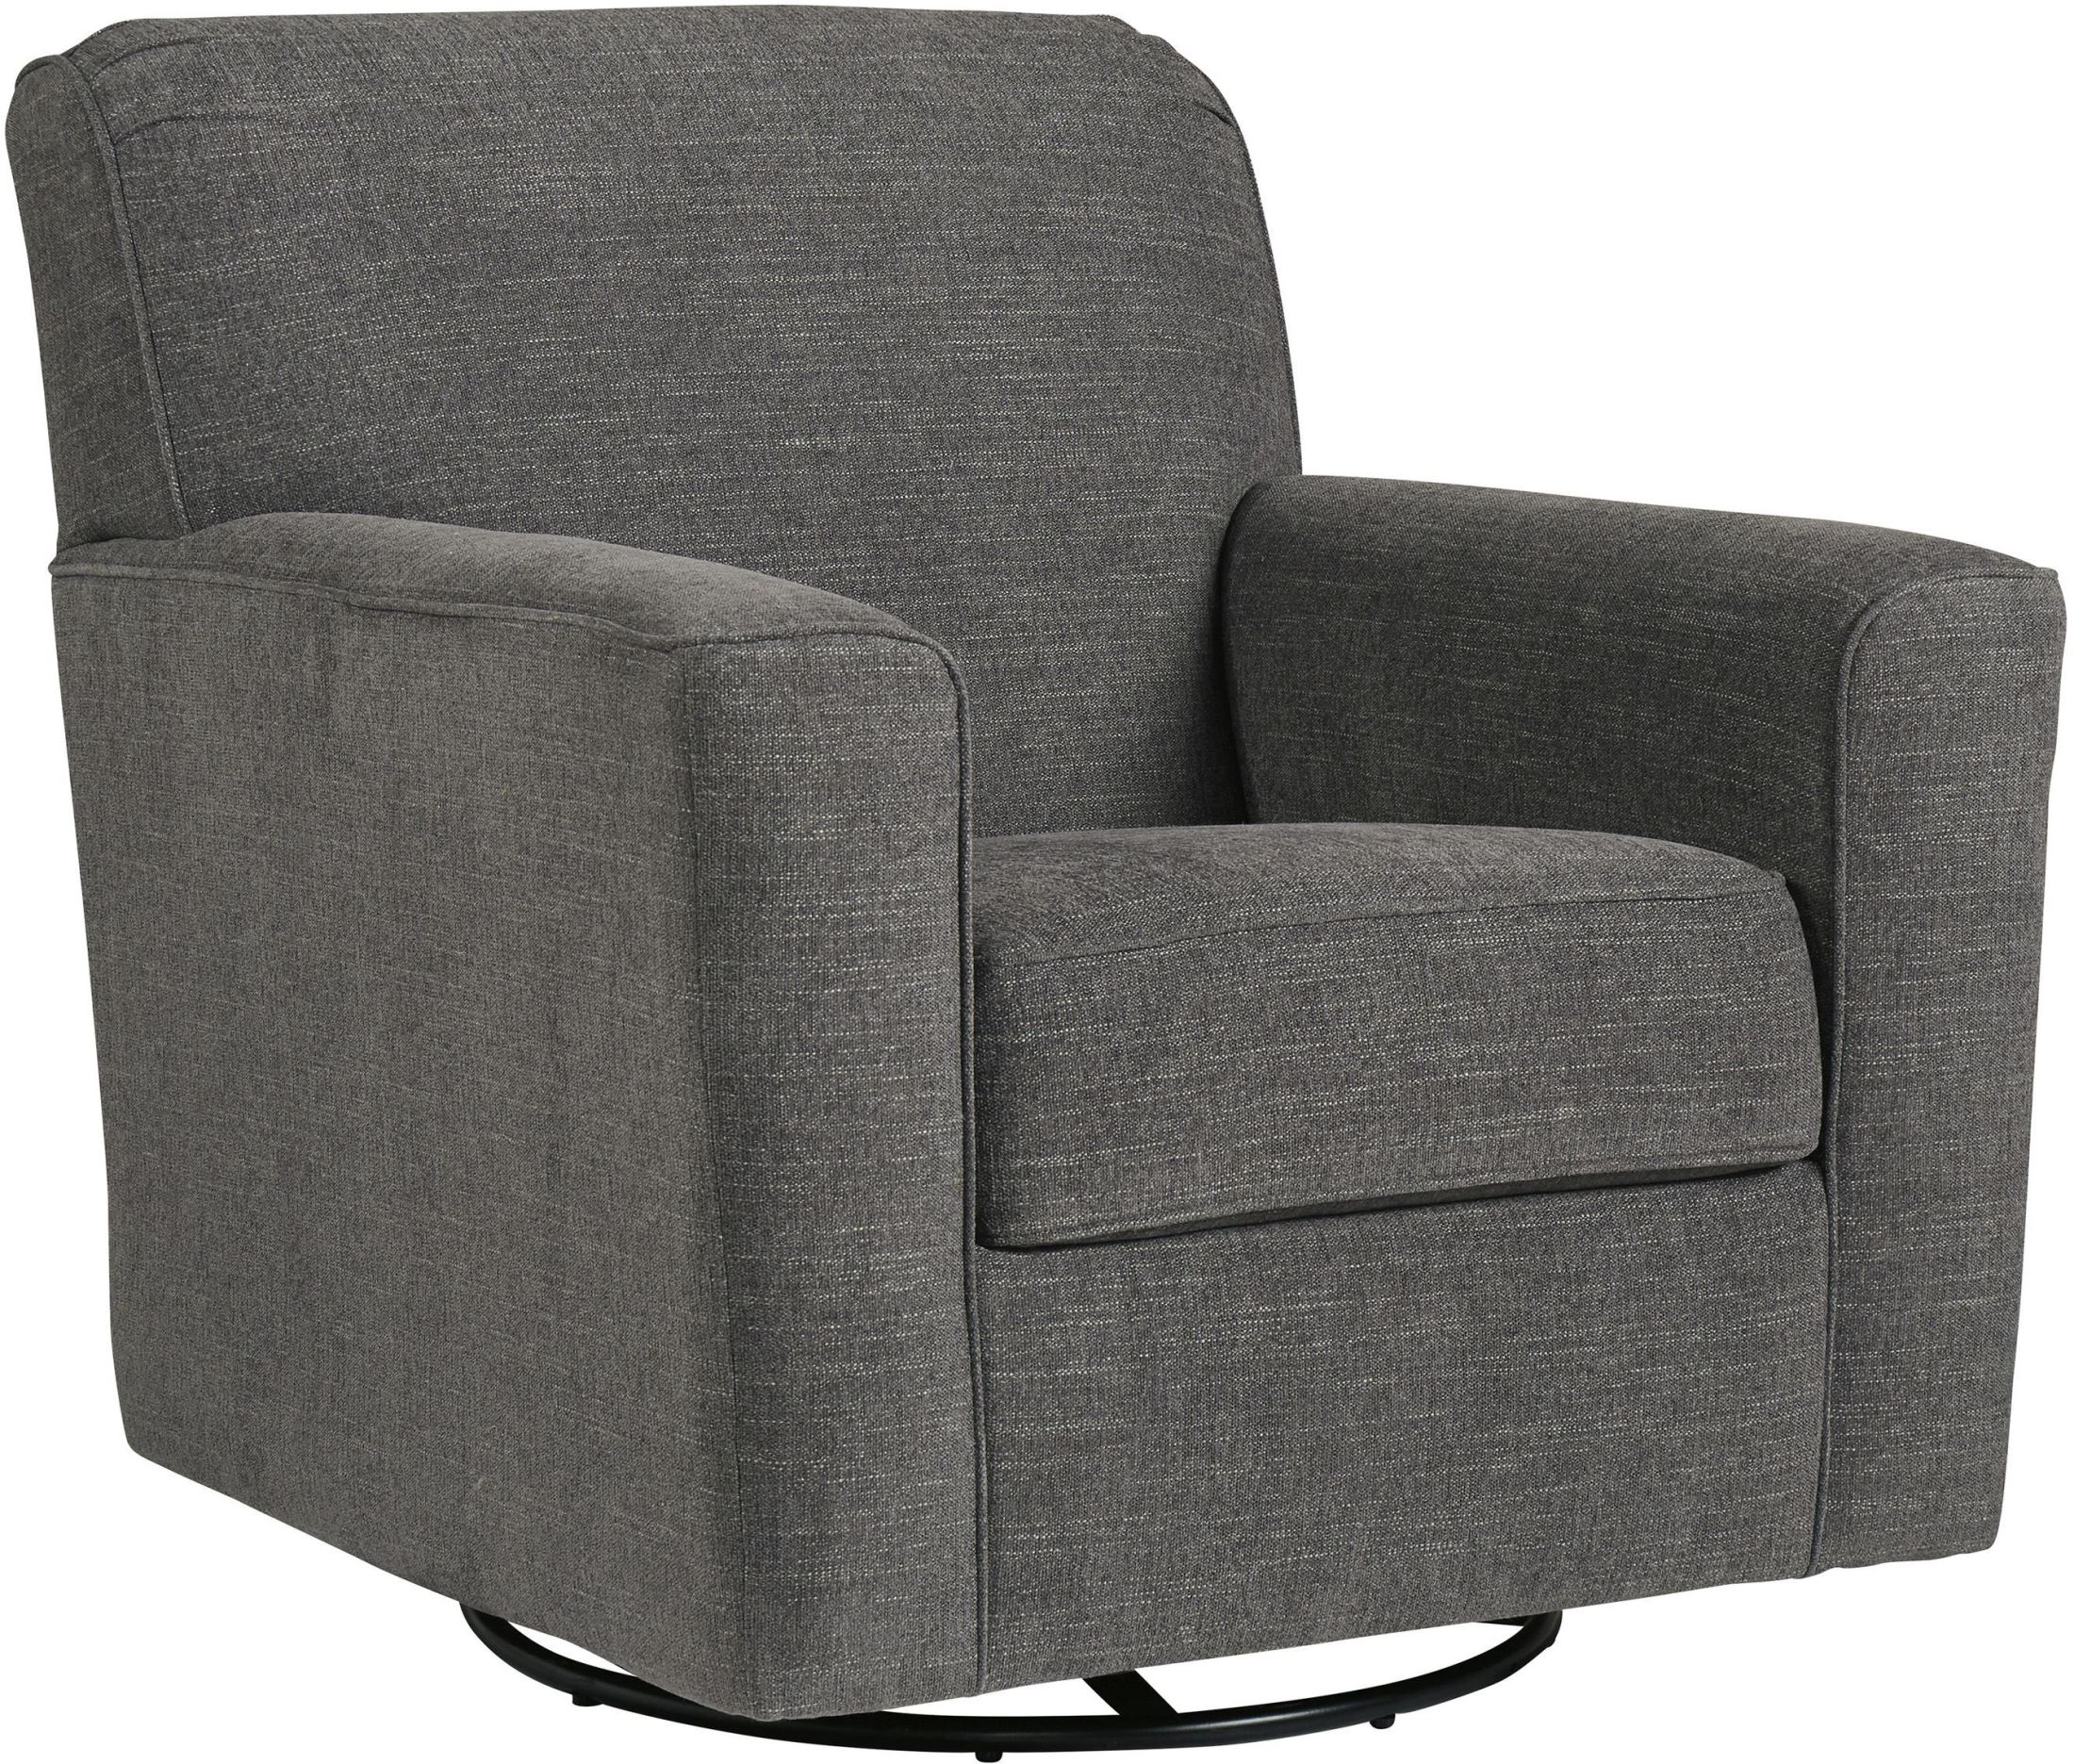 Signature Designashley Alcona Charcoal Swivel Glider Accent With Regard To Charcoal Swivel Chairs (View 7 of 25)